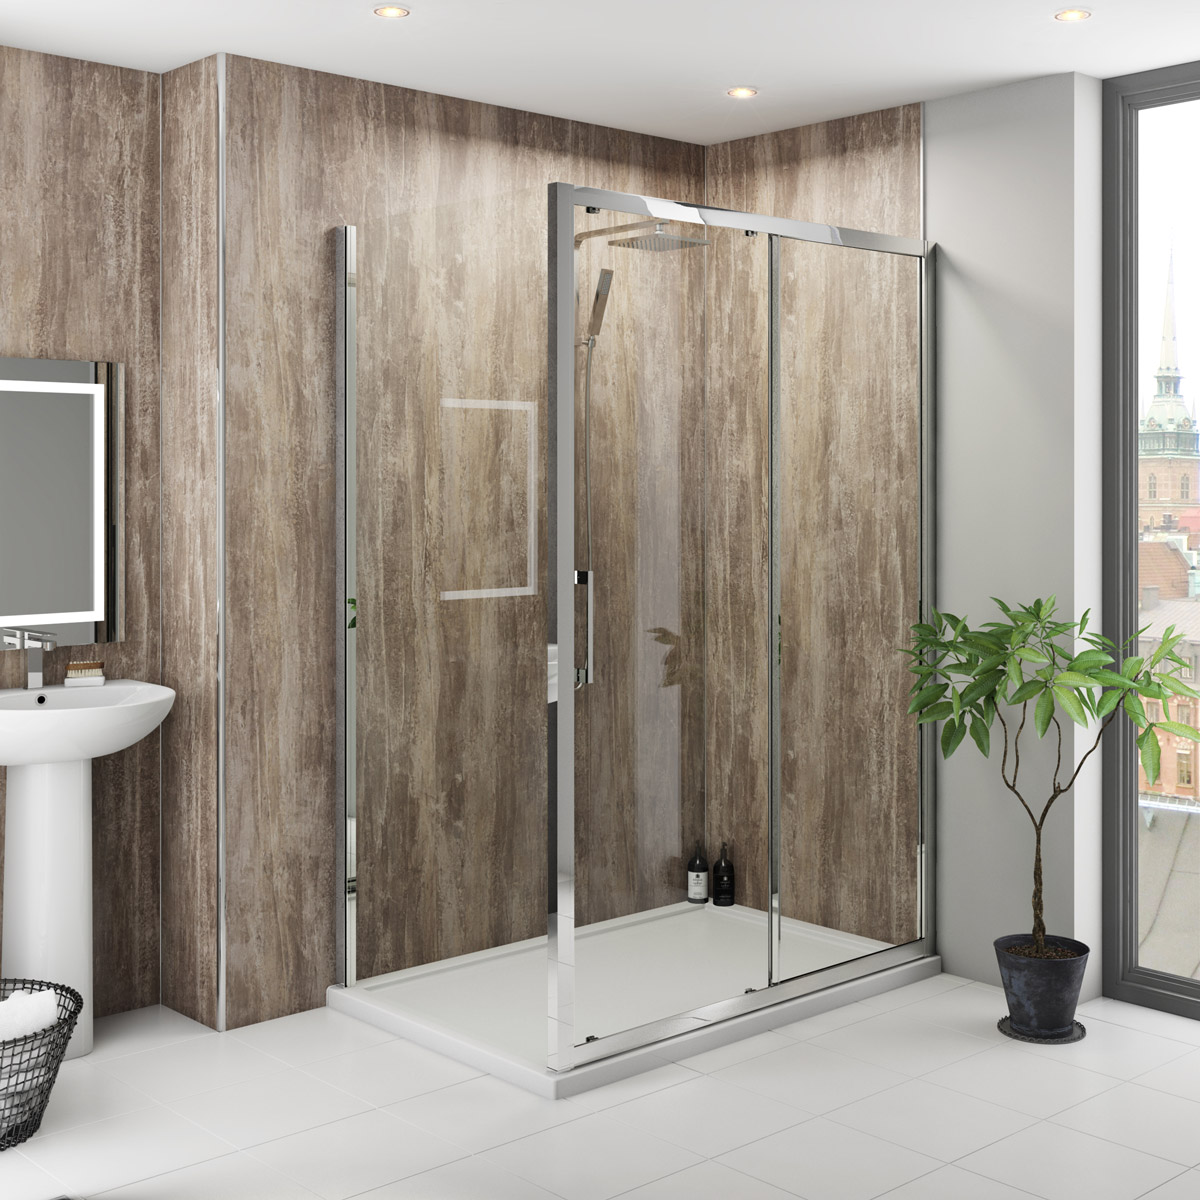 Image of: Modern Shower Wall Panels